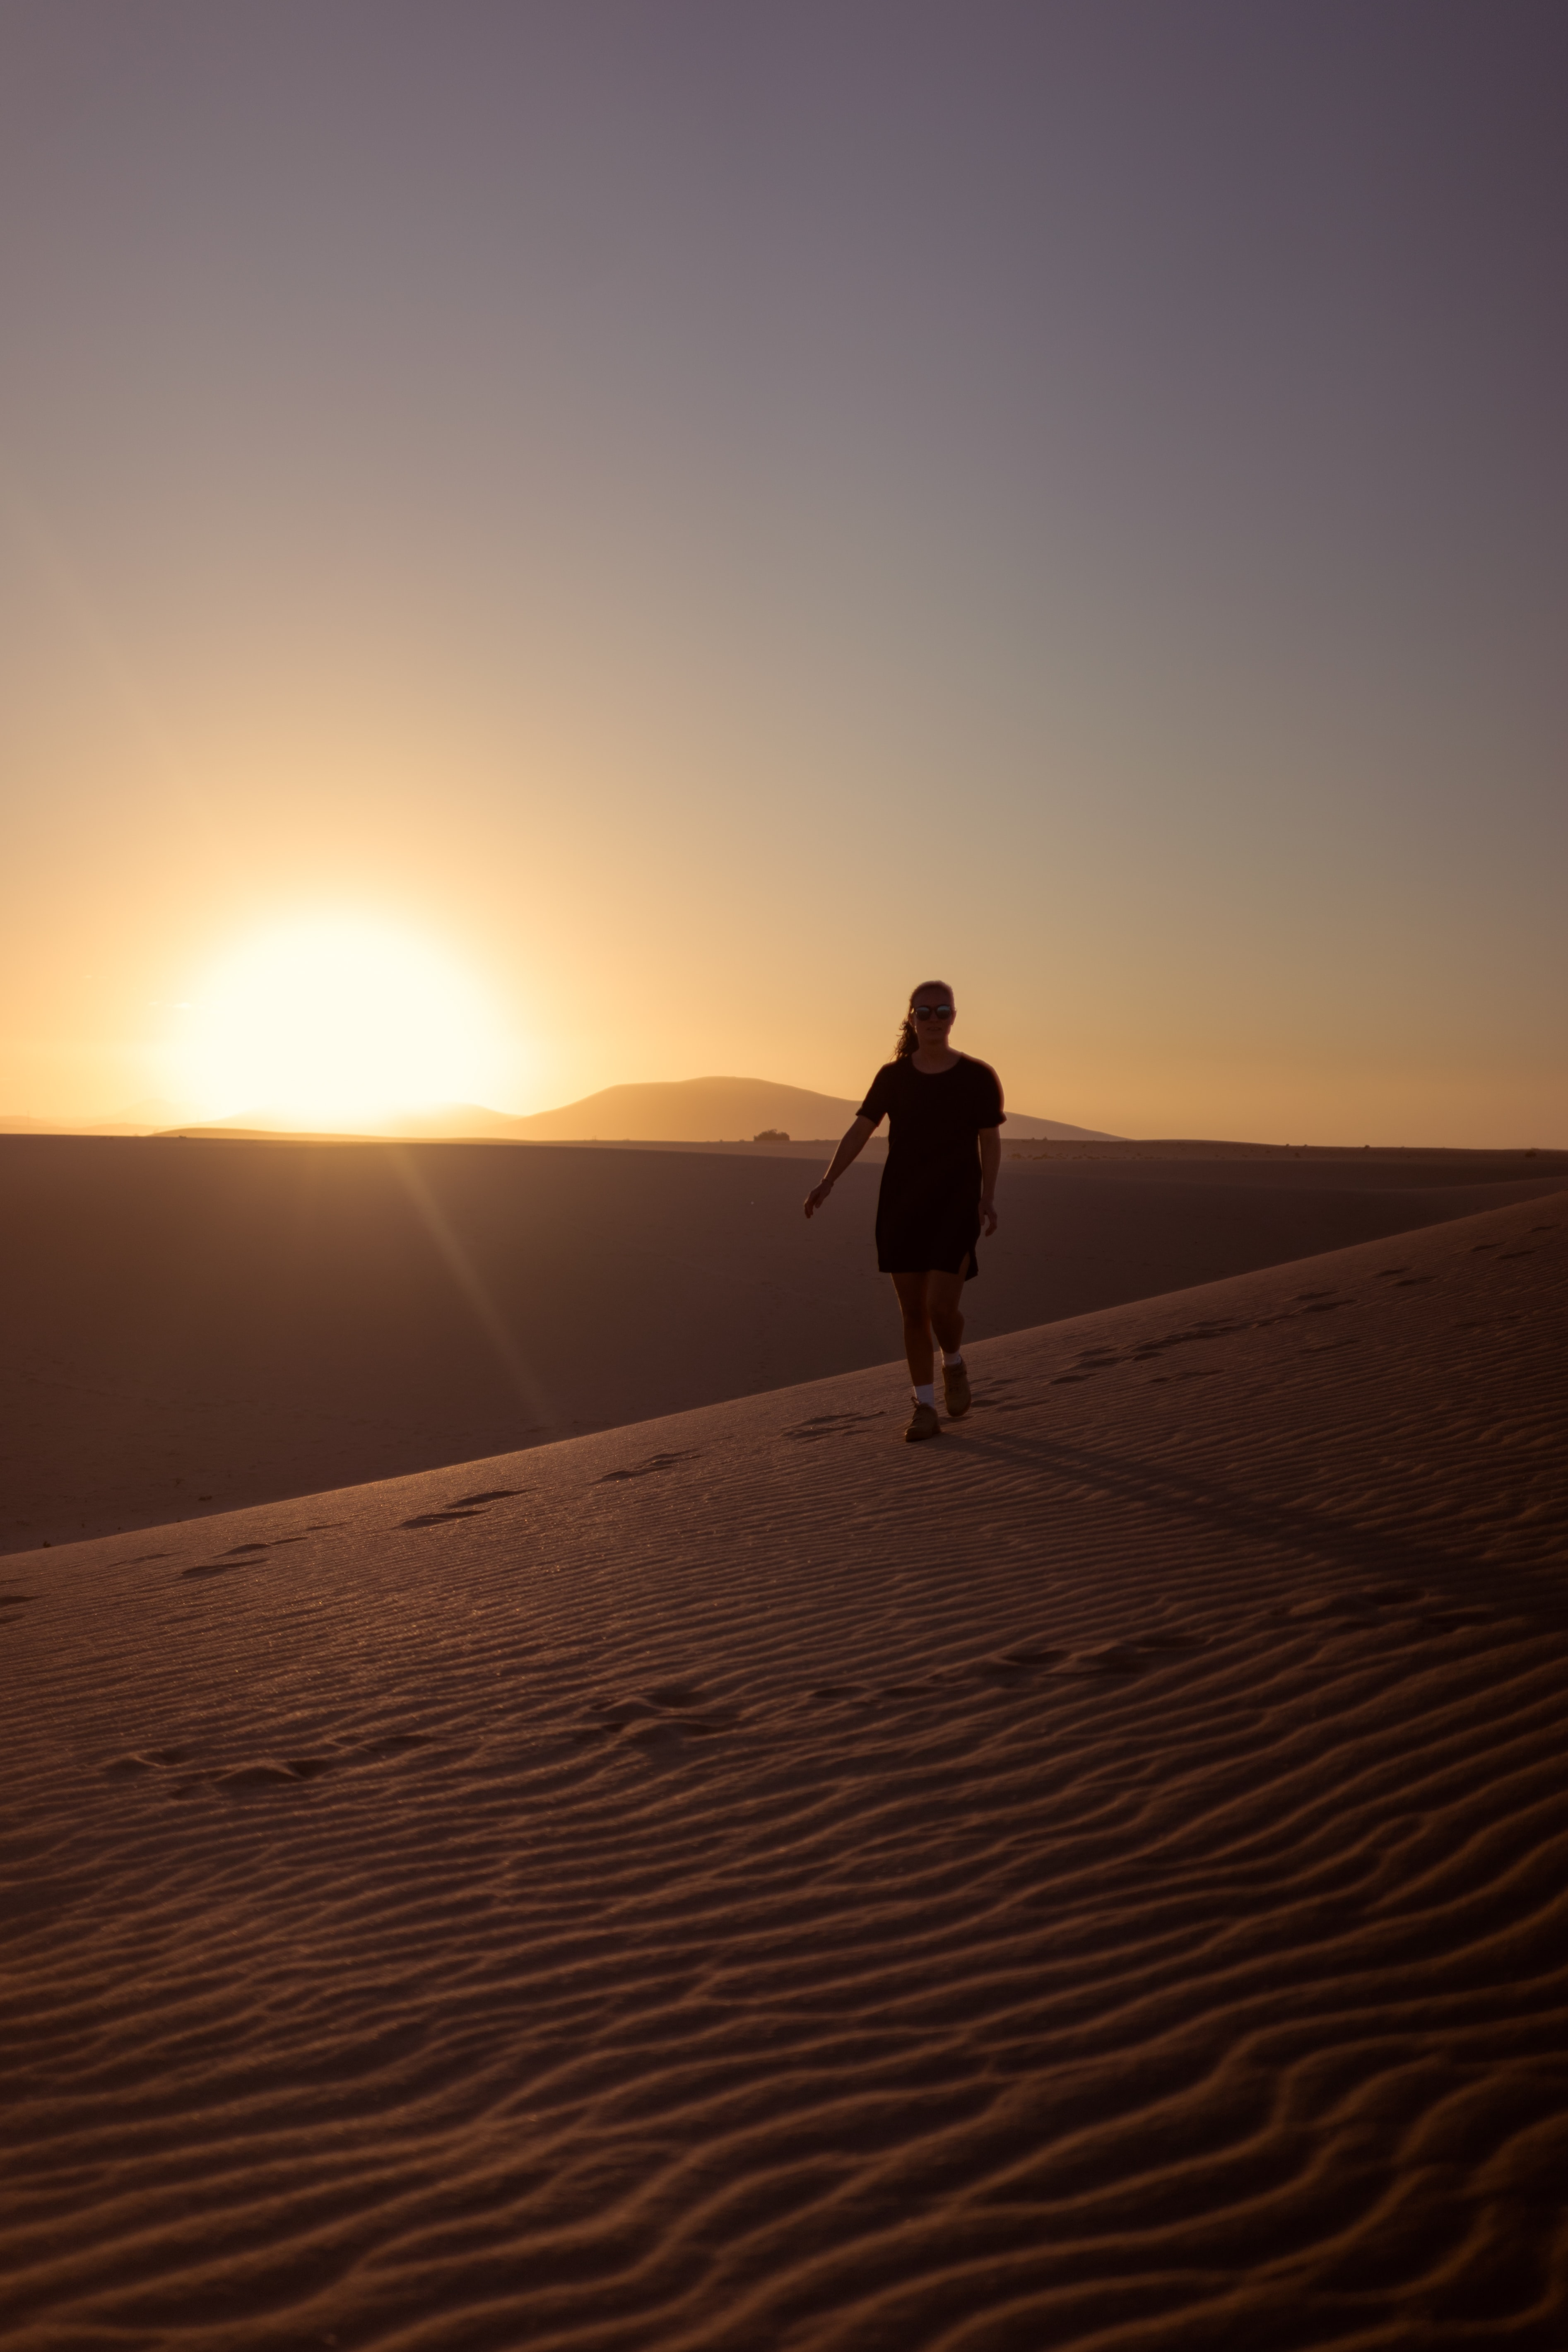 woman walking on desert during sunset